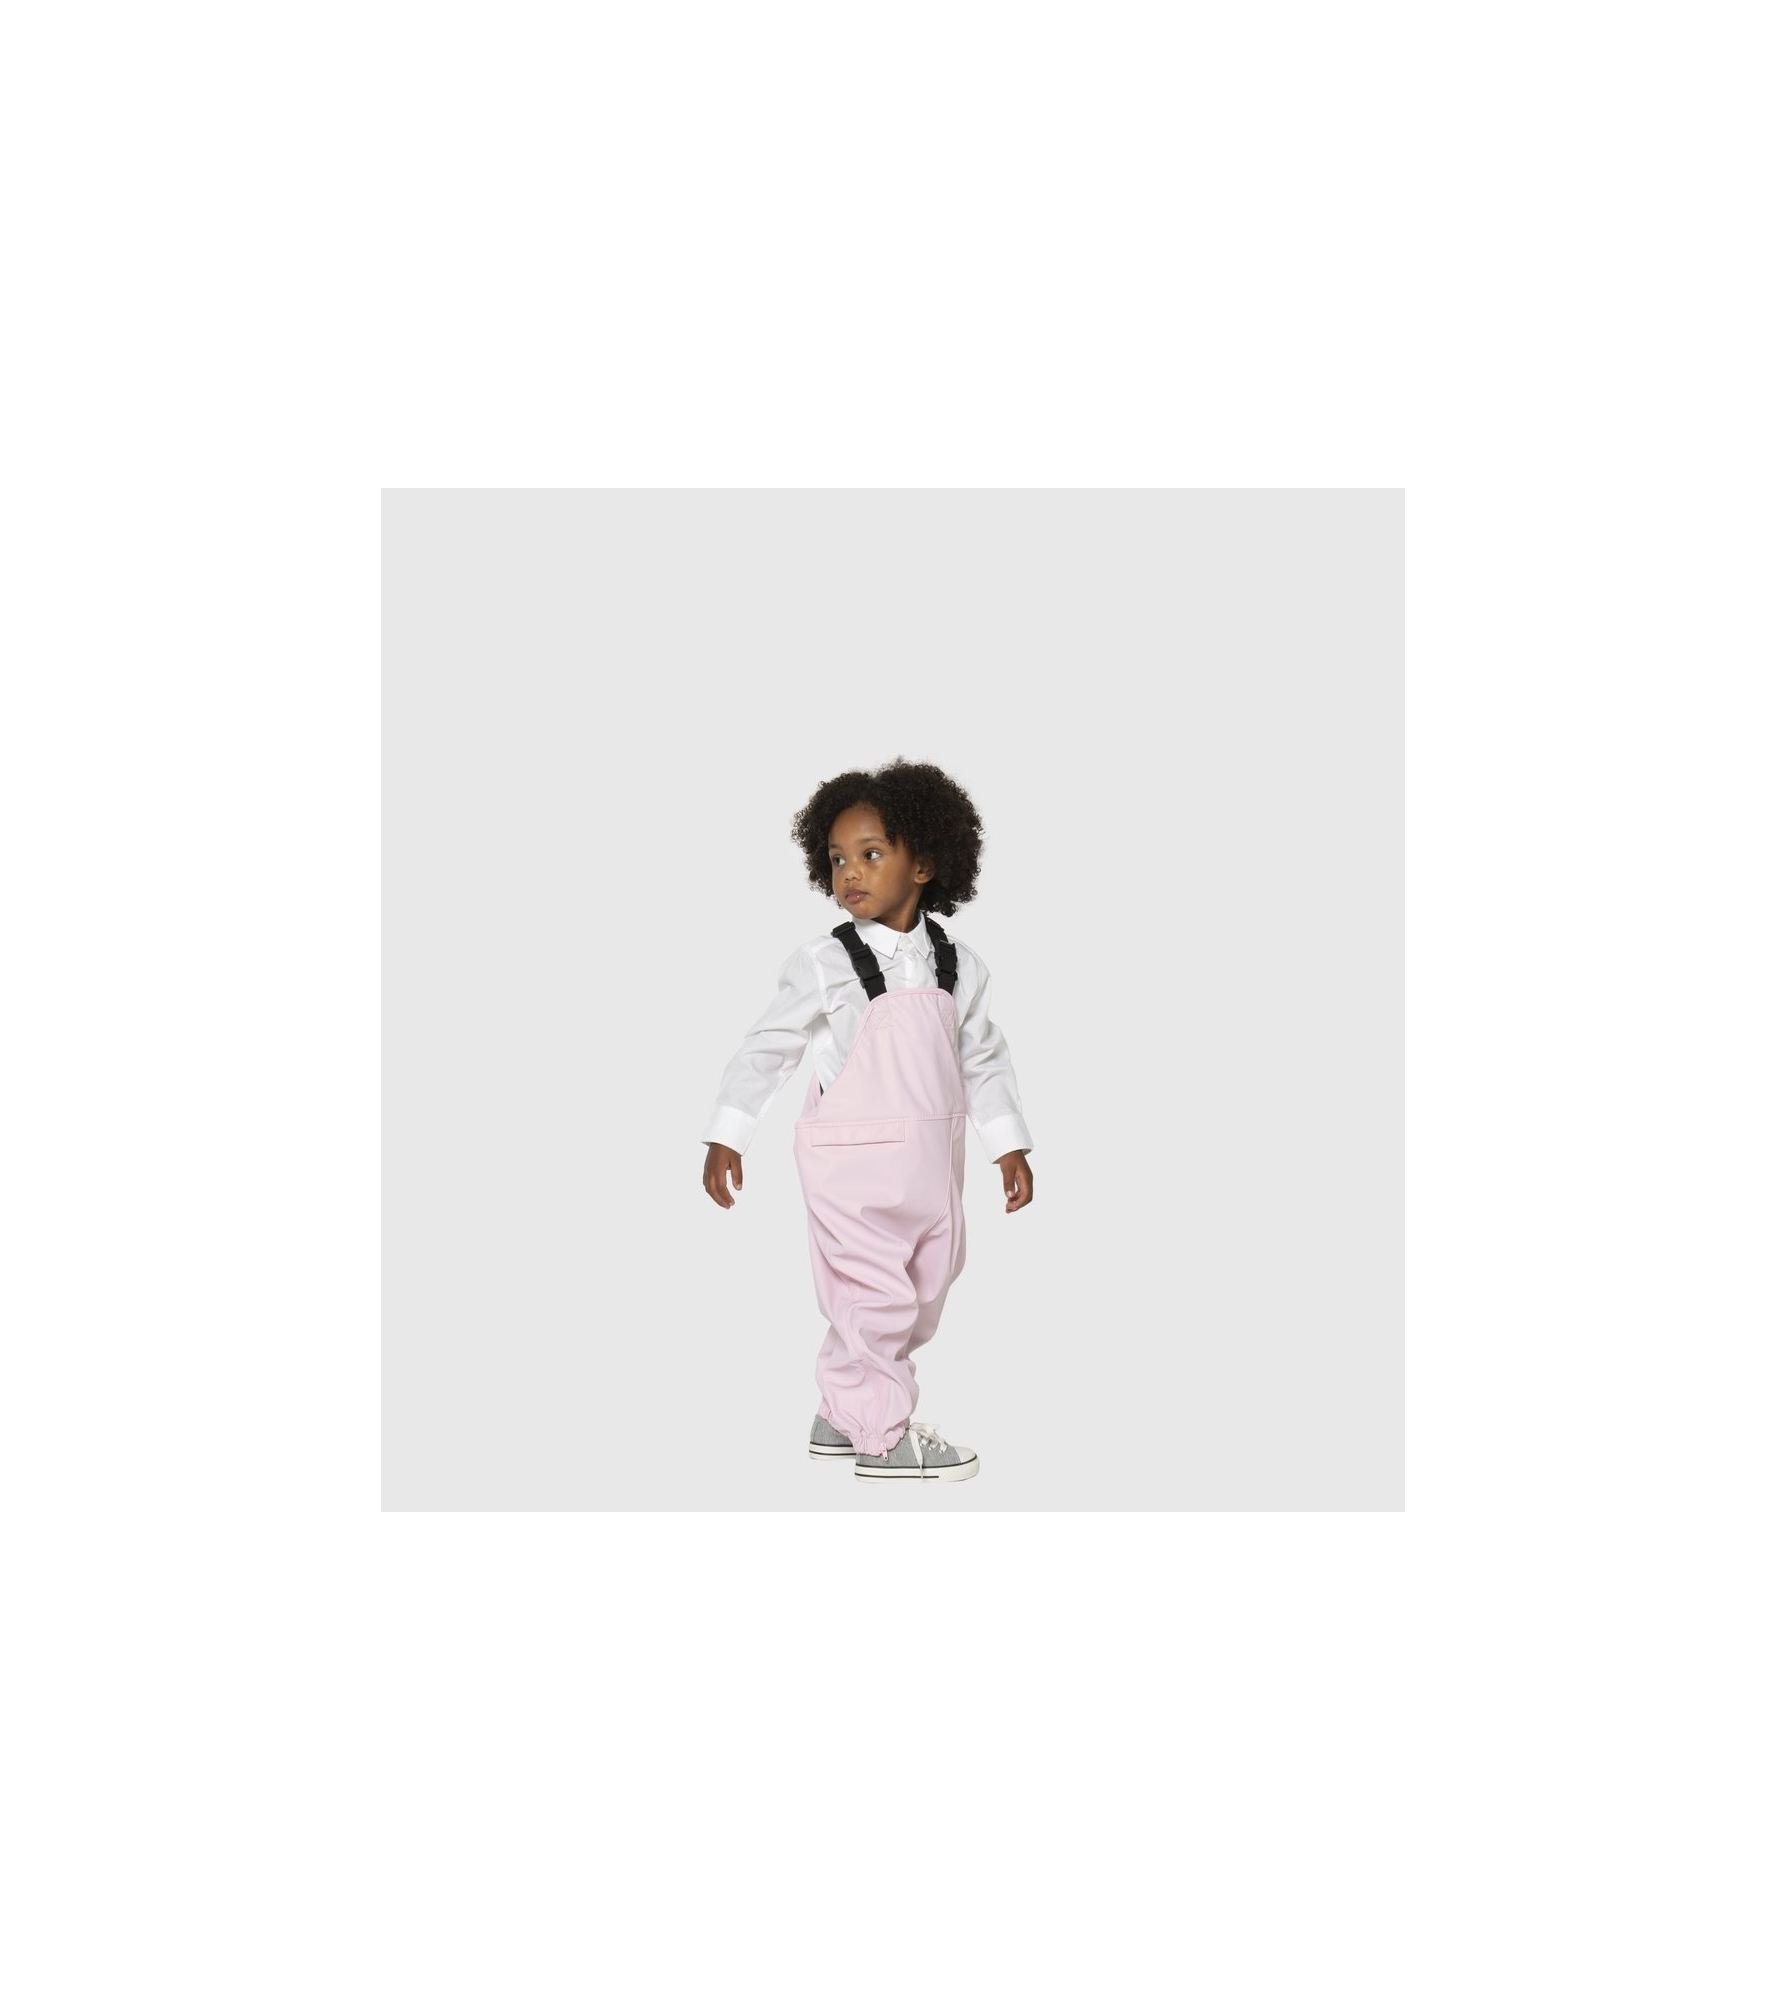 GOSOAKY_PRINCEOFFOXES_CRADLEPINK_FRONT_1024x1024.jpg